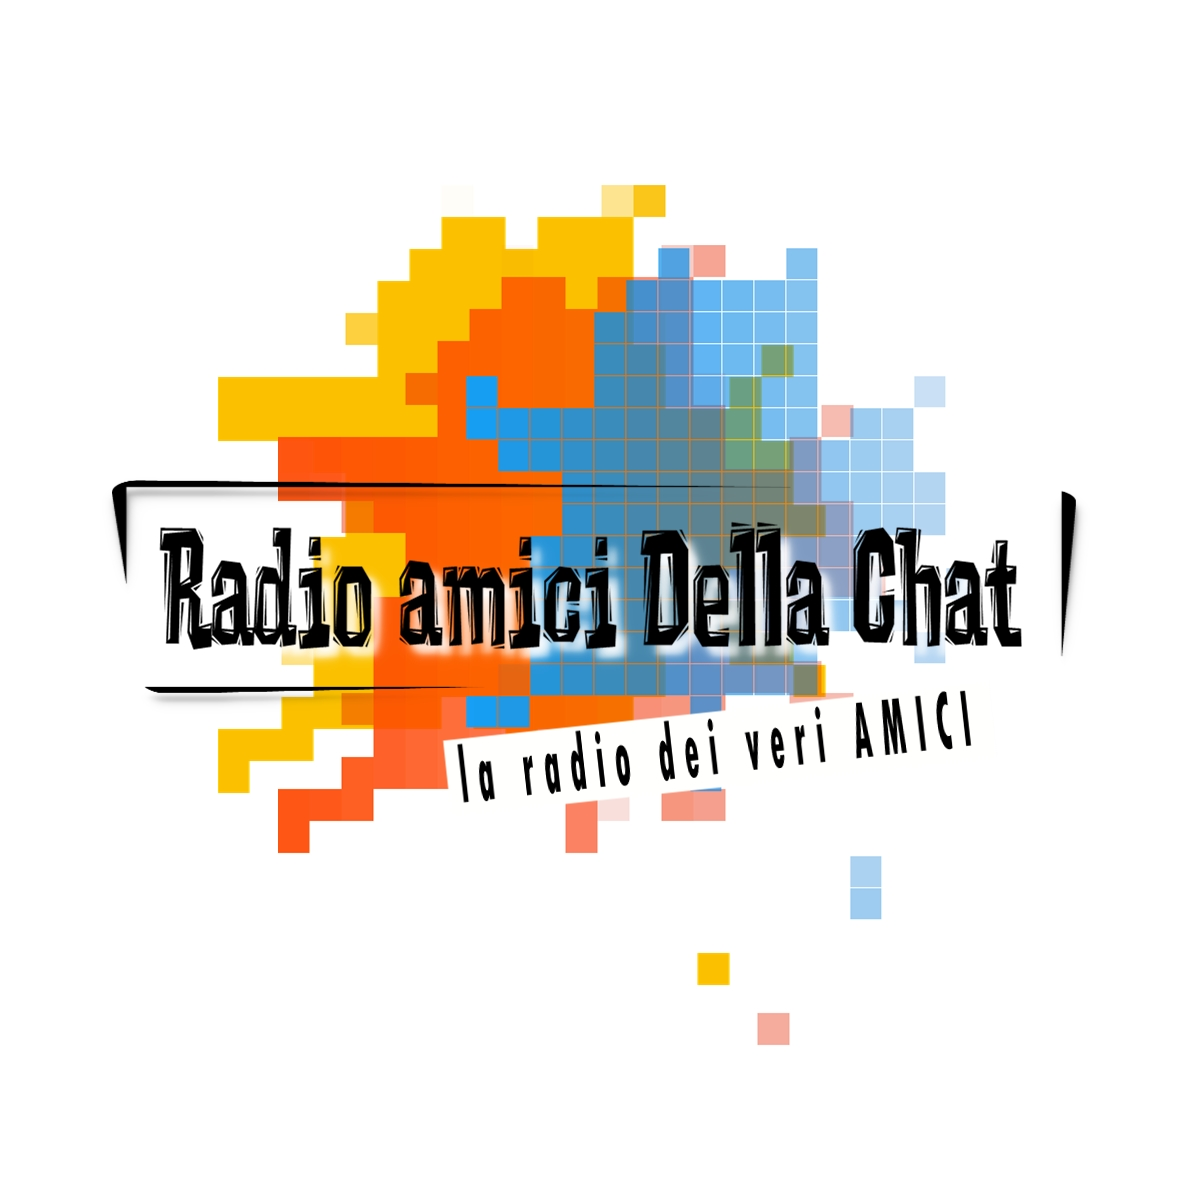 Radioamicidellachat